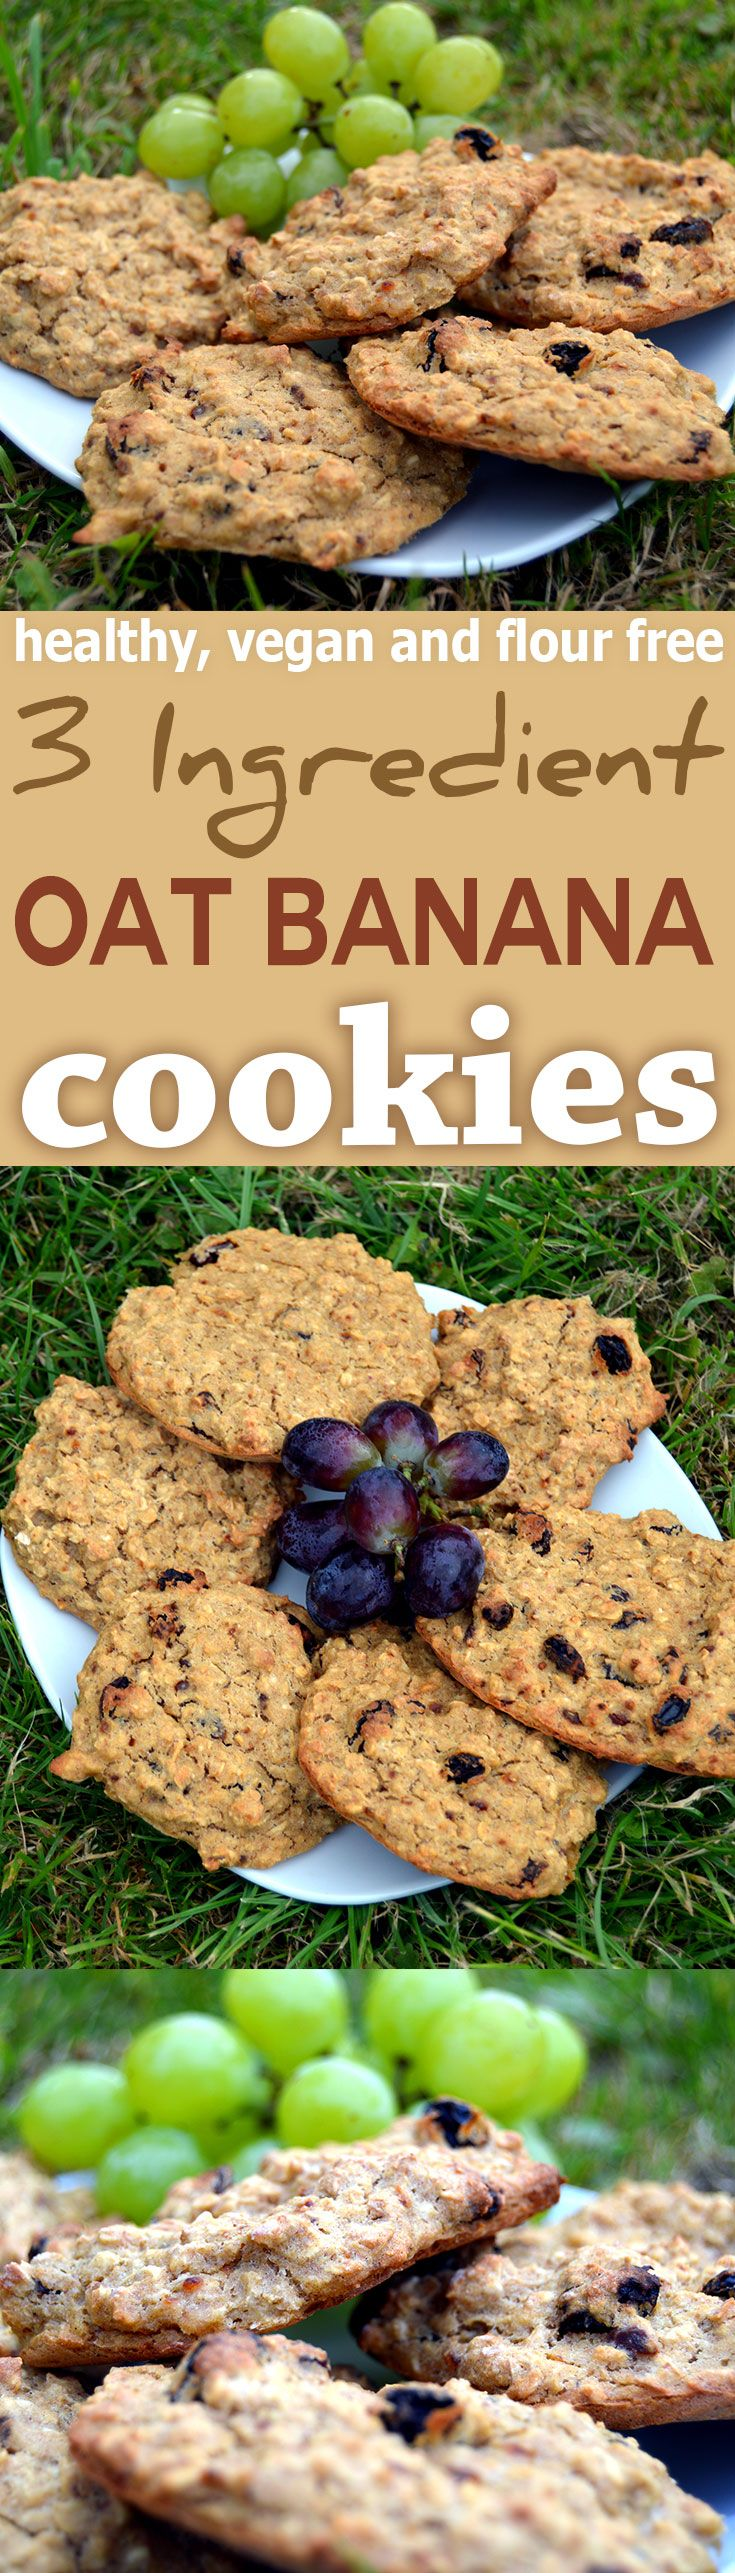 hese raisin banana oat biscuits are simple to make, contain no flour, are sweetened with just bananas, take a few mins to make via @nestandglow